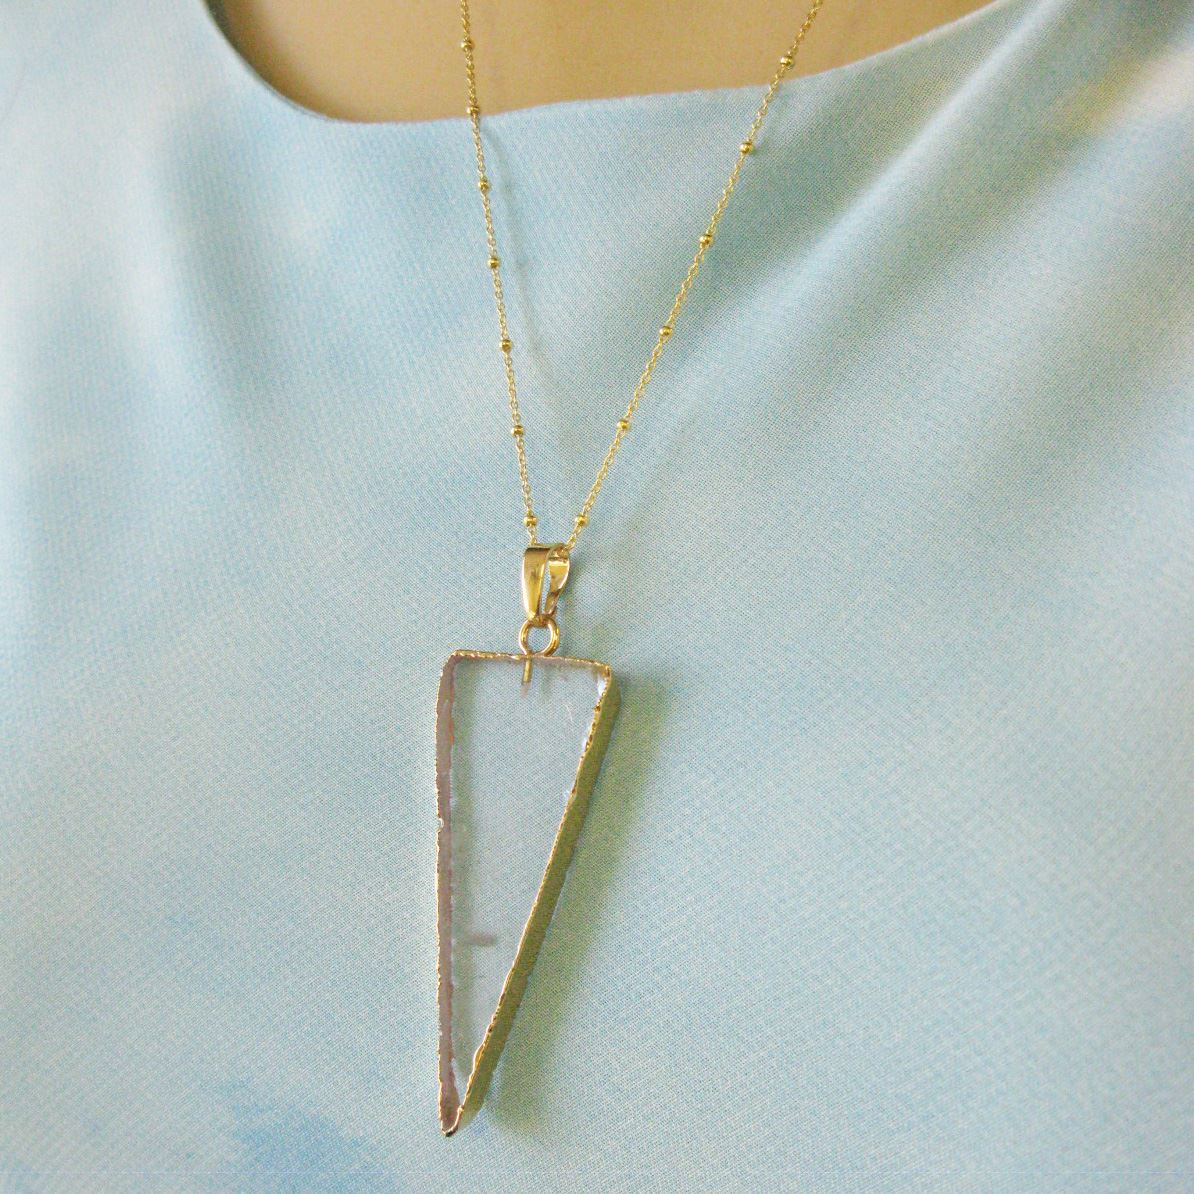 Crystal Spike Pendant Necklace -Crystal Triangle and Gold Necklace - Gold plated Sterling Silver Beaded Necklace Chain